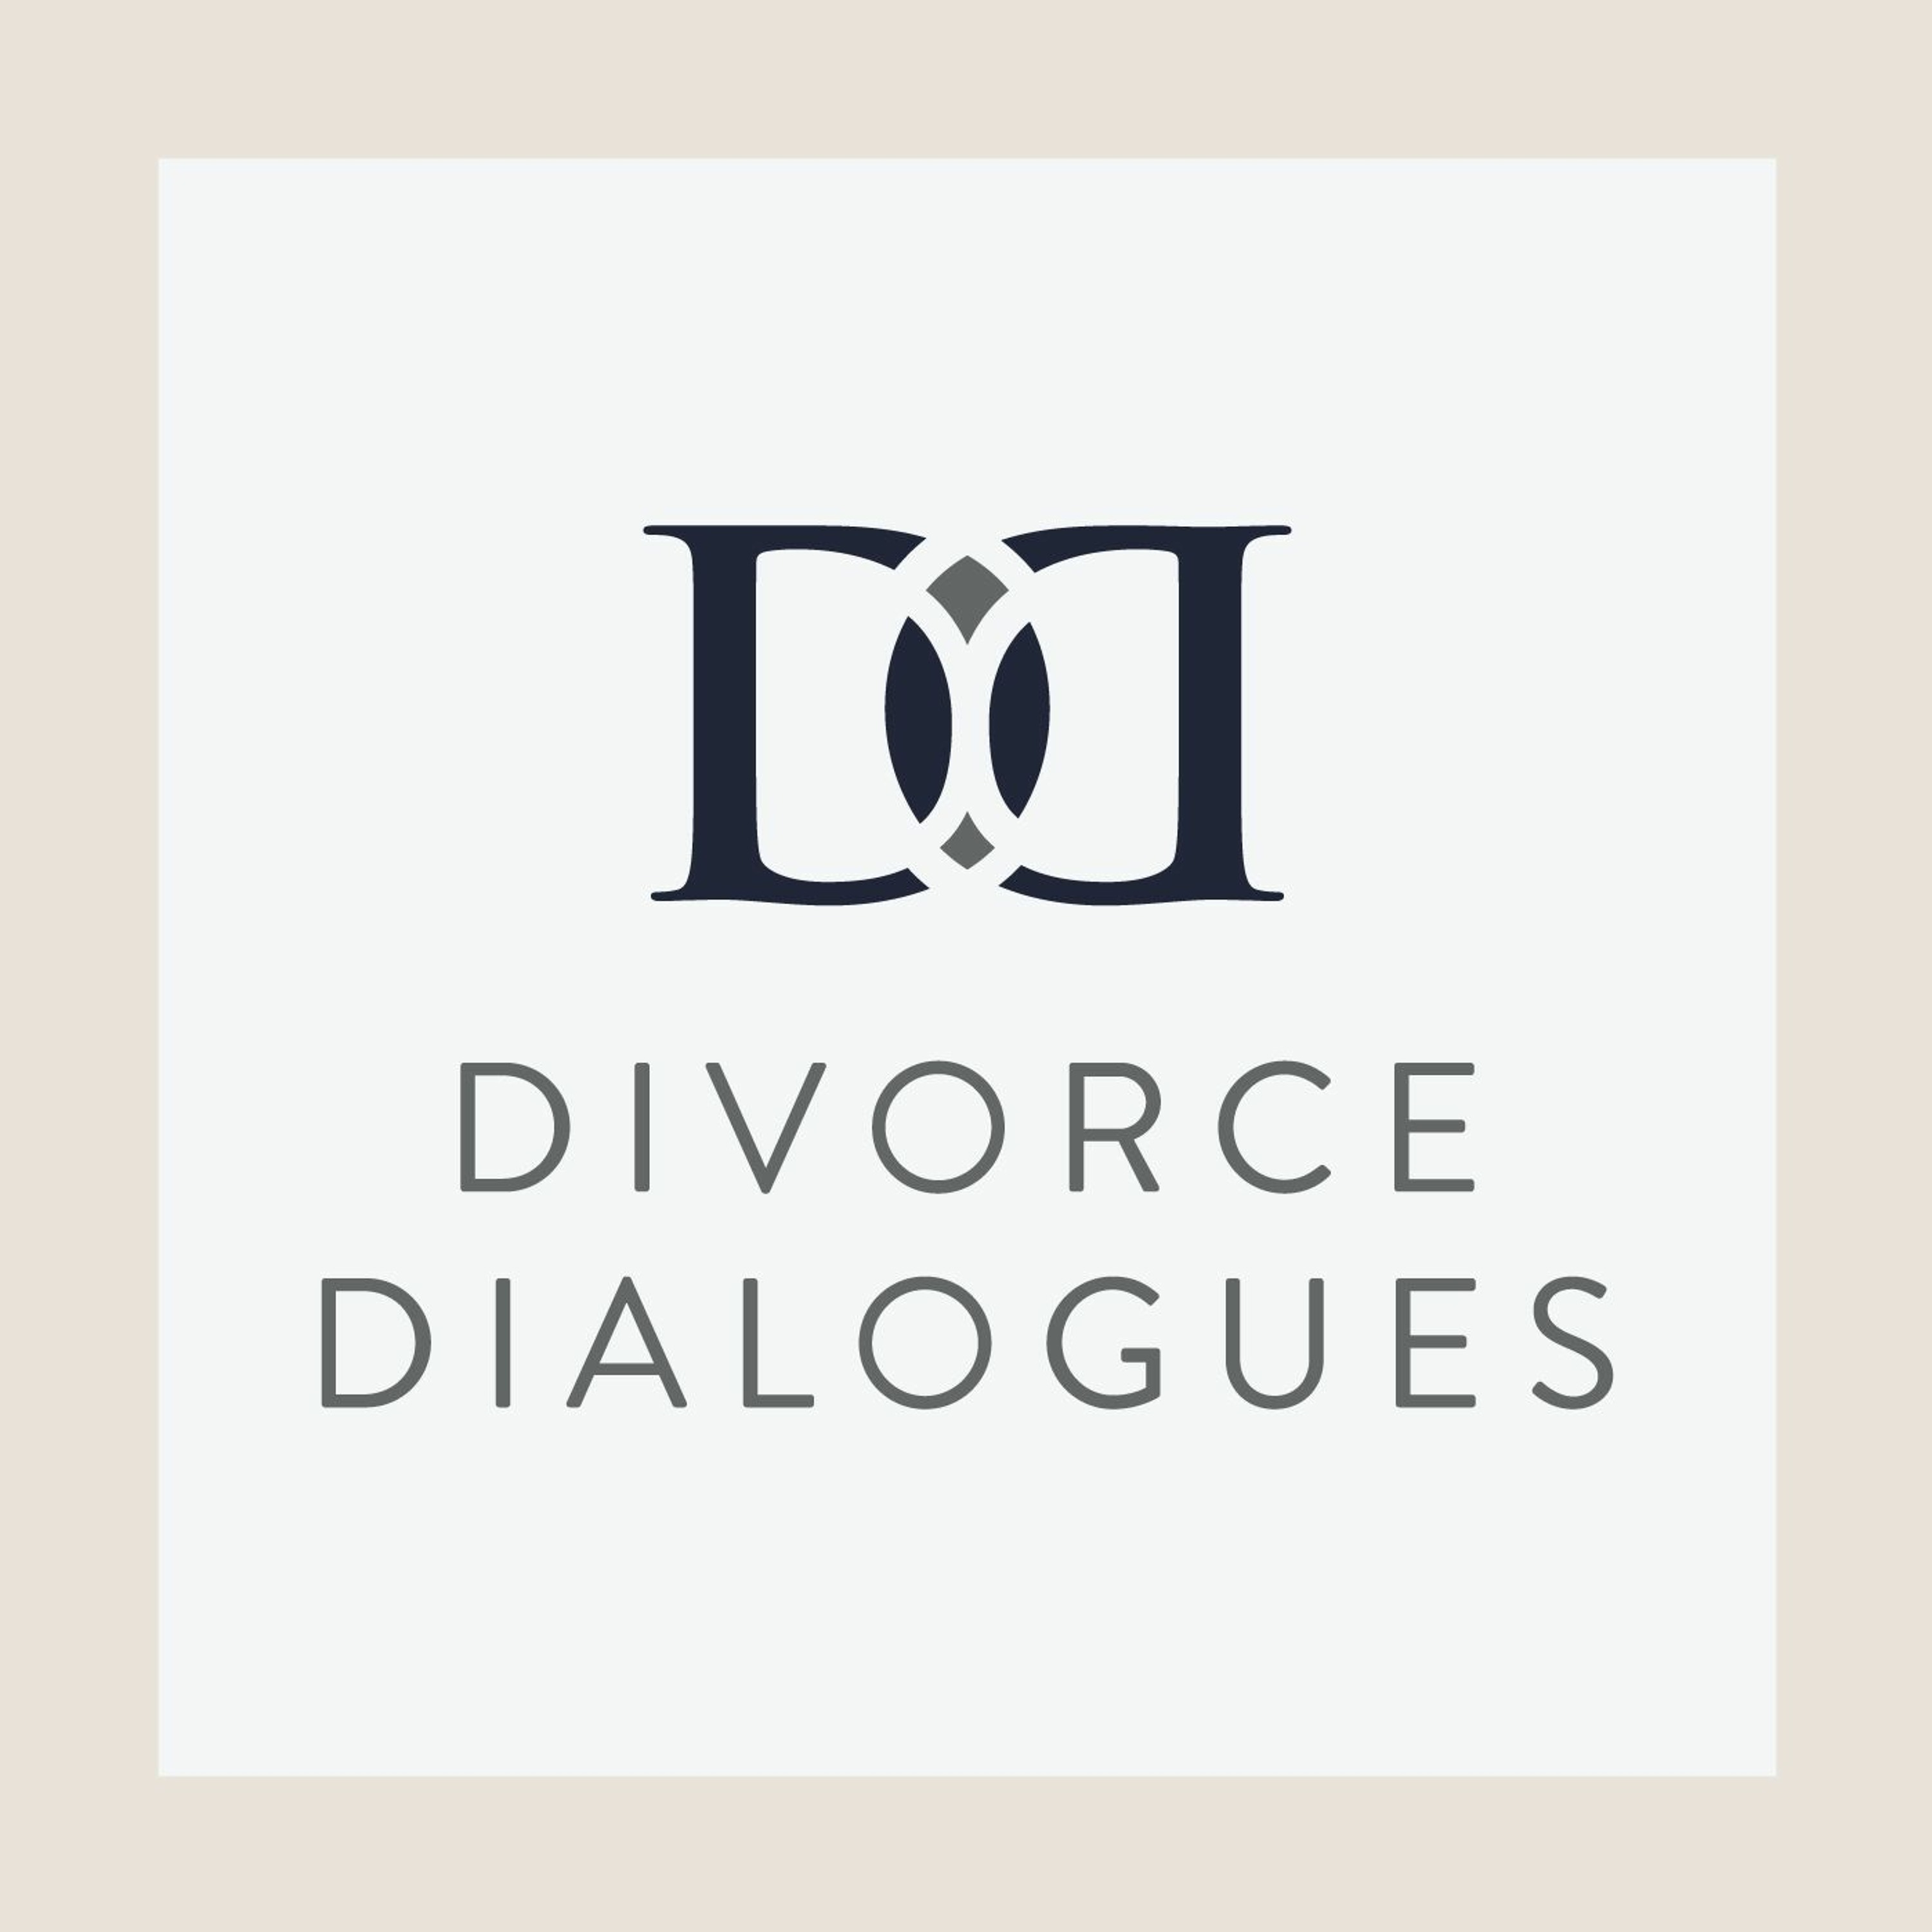 Divorce Dialogues - Making Divorce Child-Centric with Dr. Eric Frazer